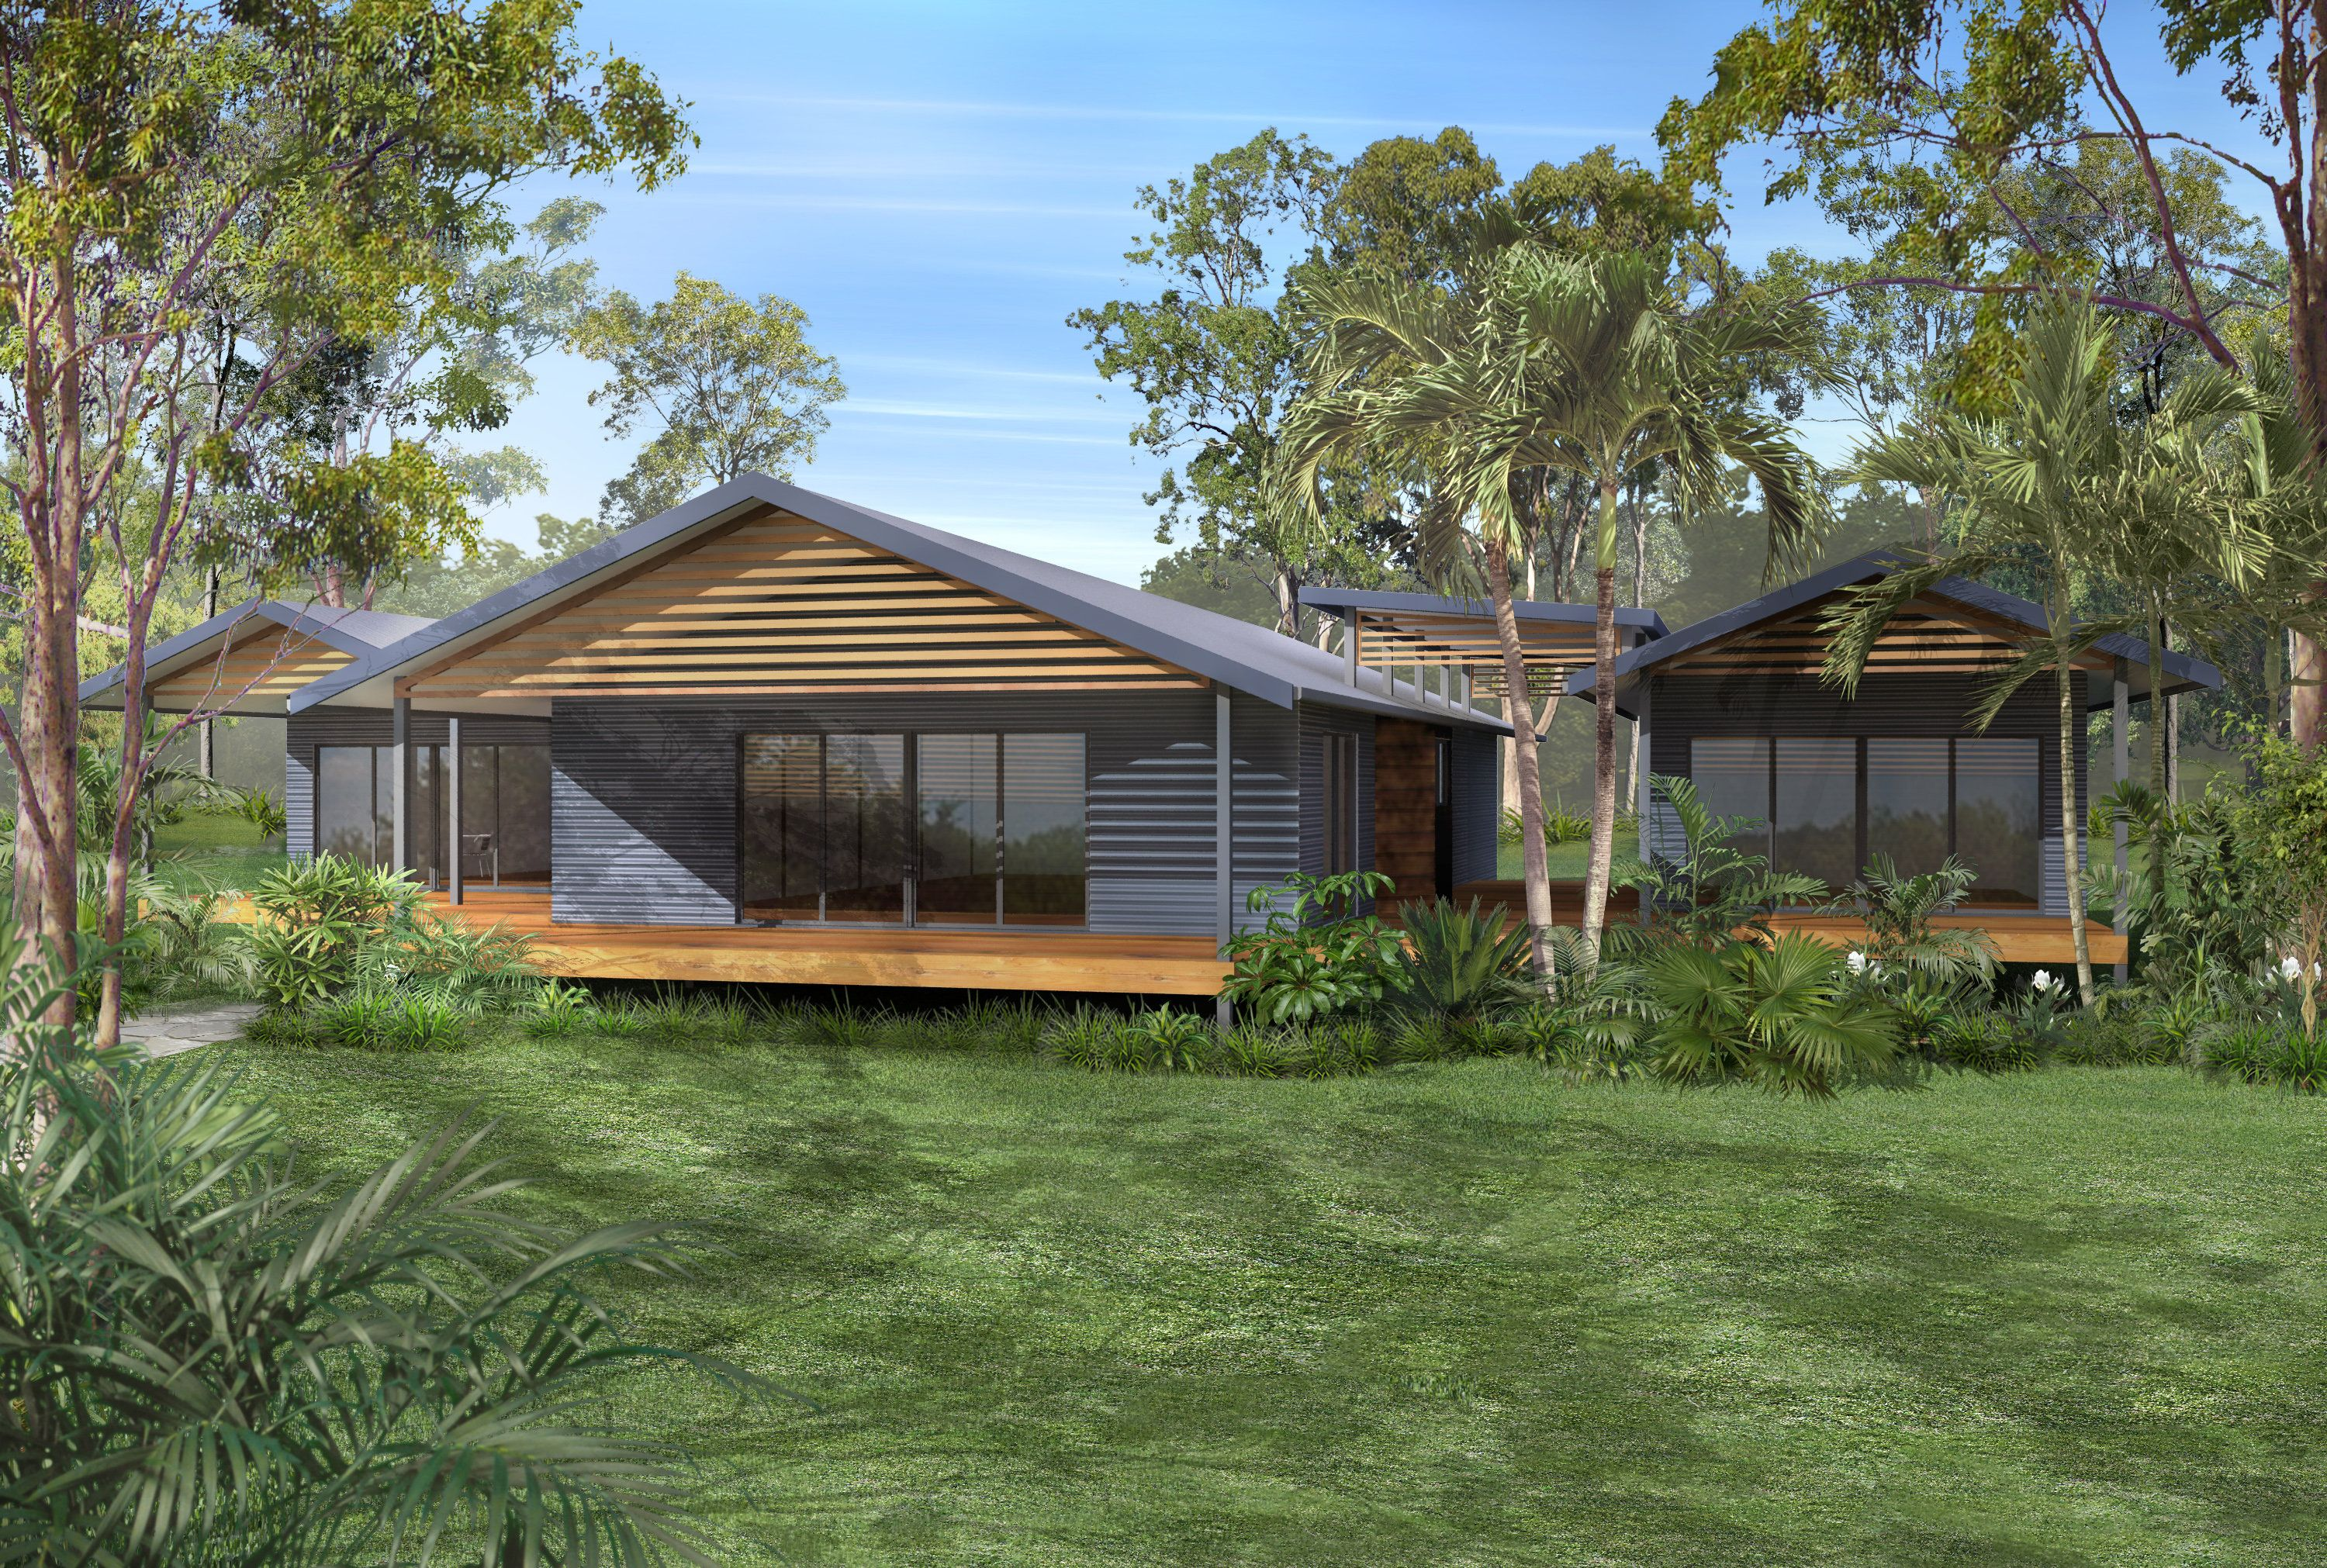 Distinctive Homes House Plans On Stumps And Poles Home Design Ebook A In 2020 Country House Plans Australian House Plans 4 Bedroom House Plans